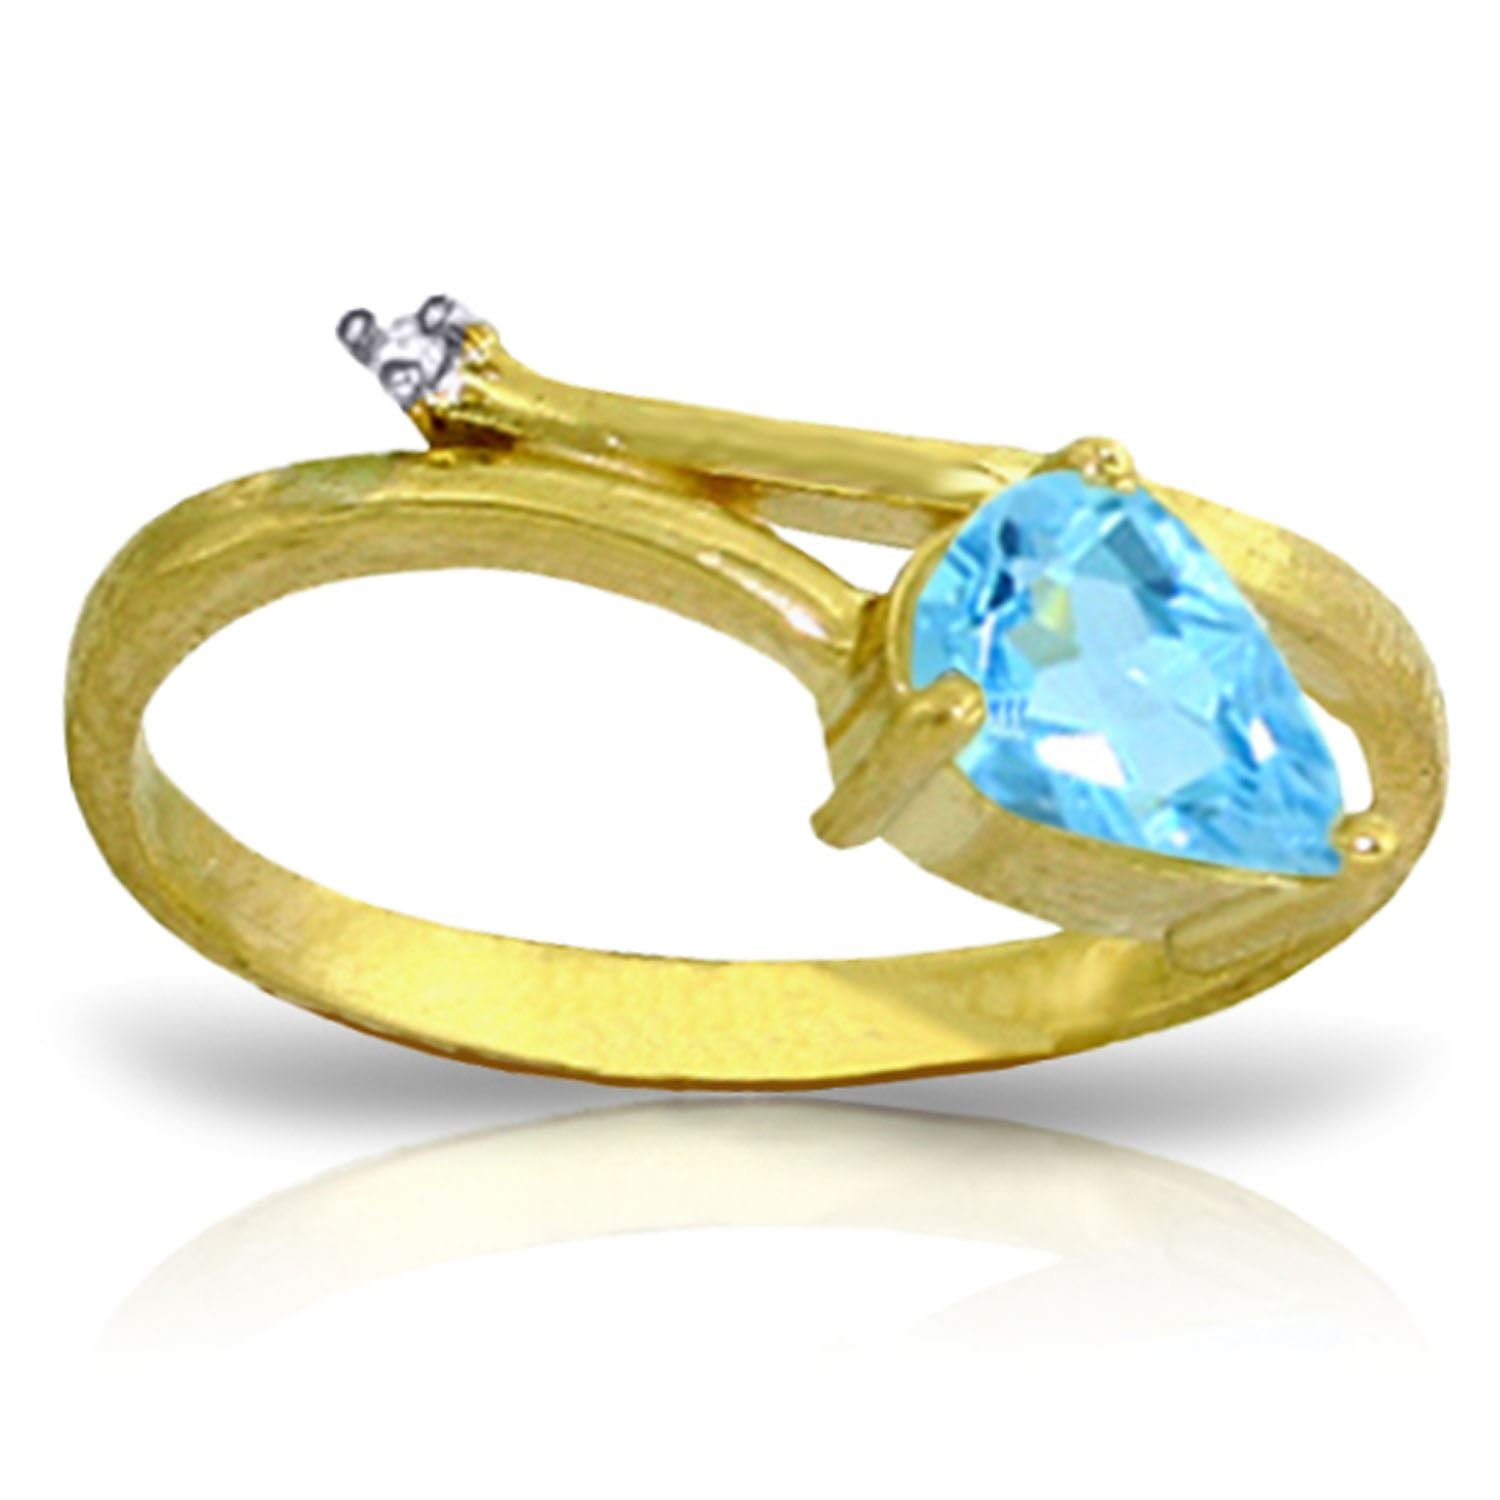 ALARRI 0.83 Carat 14K Solid Gold Love Can't Hurt Blue Topaz Diamond Ring With Ring Size 7